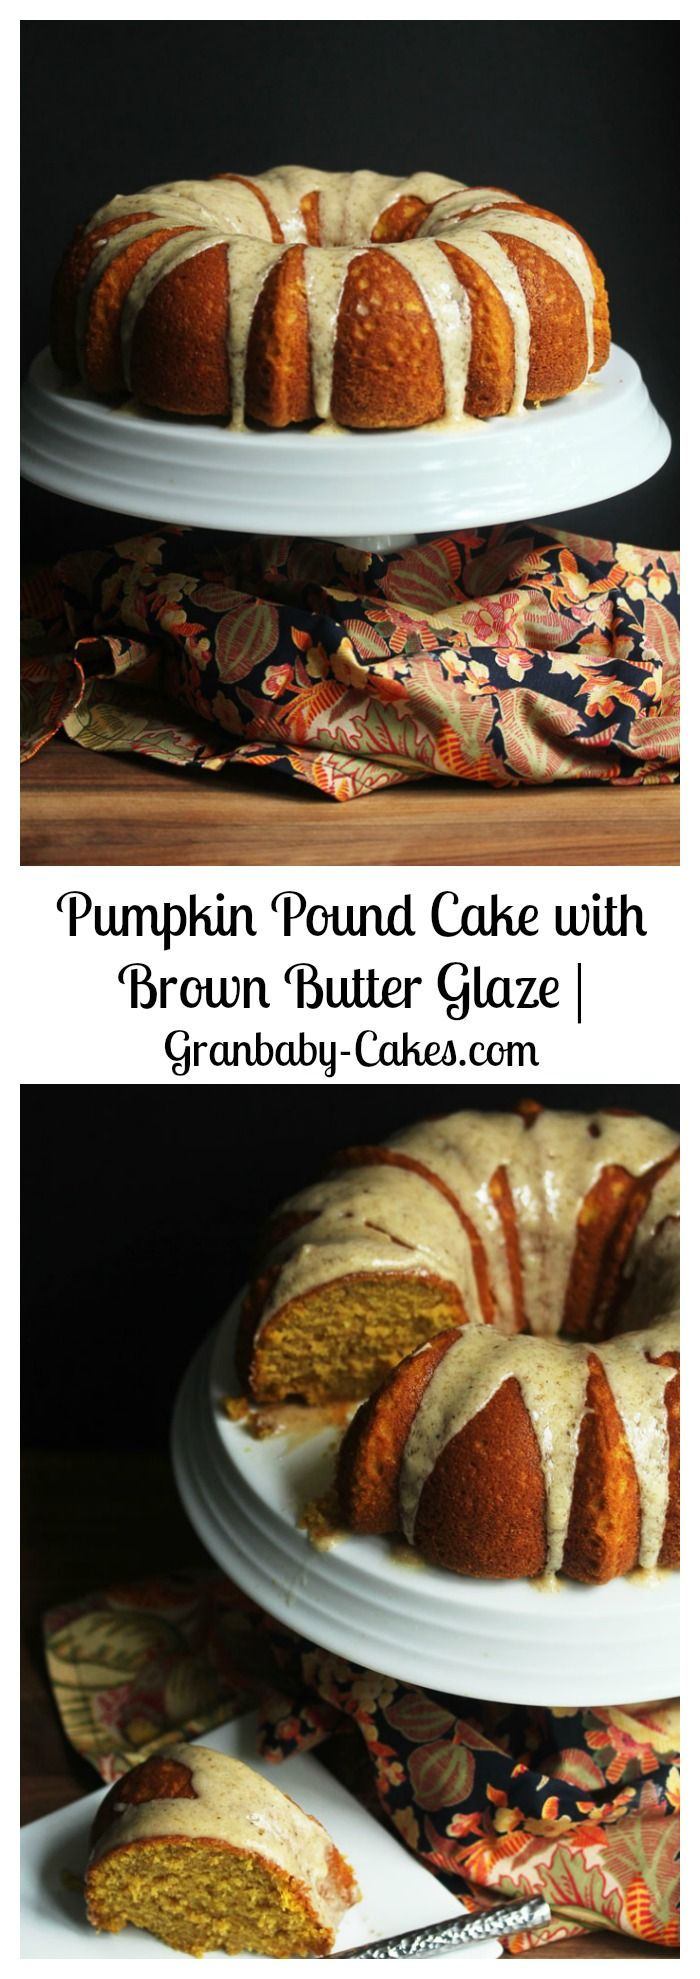 Pumpkin Pound Cake with Brown Butter Glaze | Grandbaby-Cakes.com